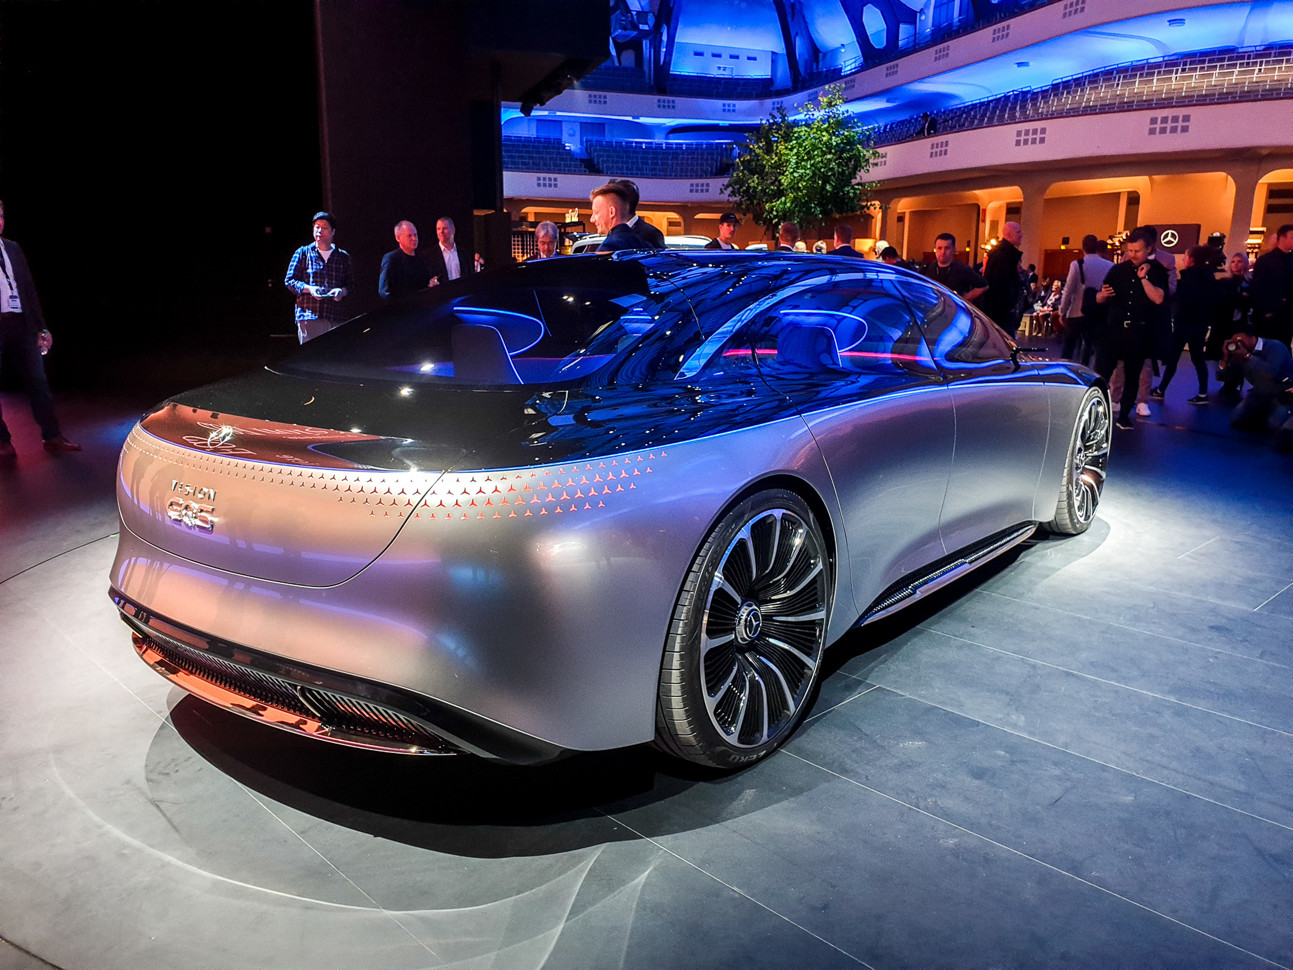 Mercedes Vision EQS concept - luxurious all-electric concept previews halo EV model